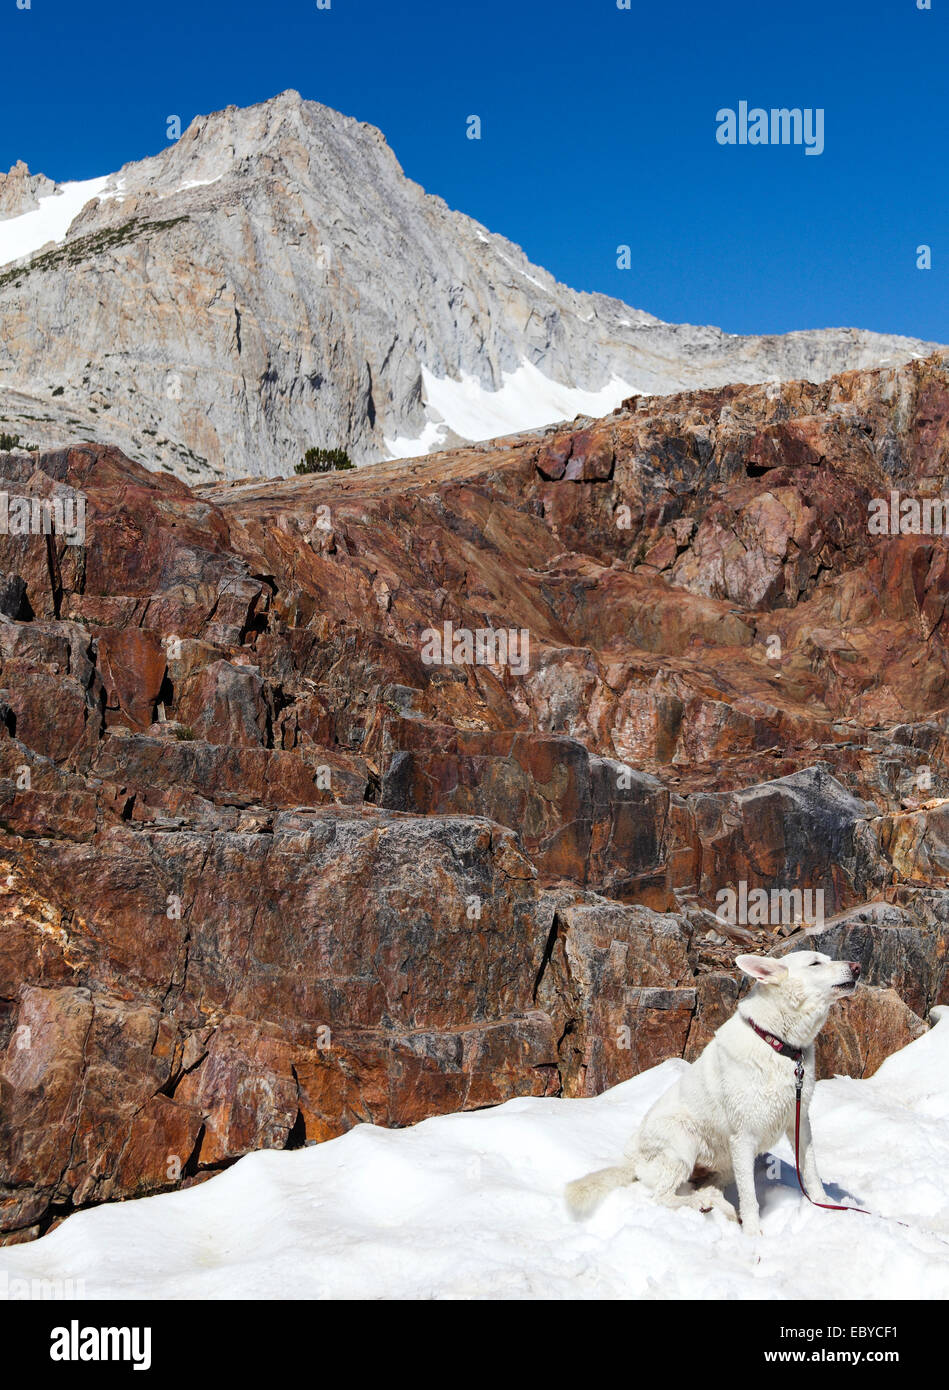 Dog  delighted by finding snowy patch in summer howls at 20 Lakes Basin - Stock Image